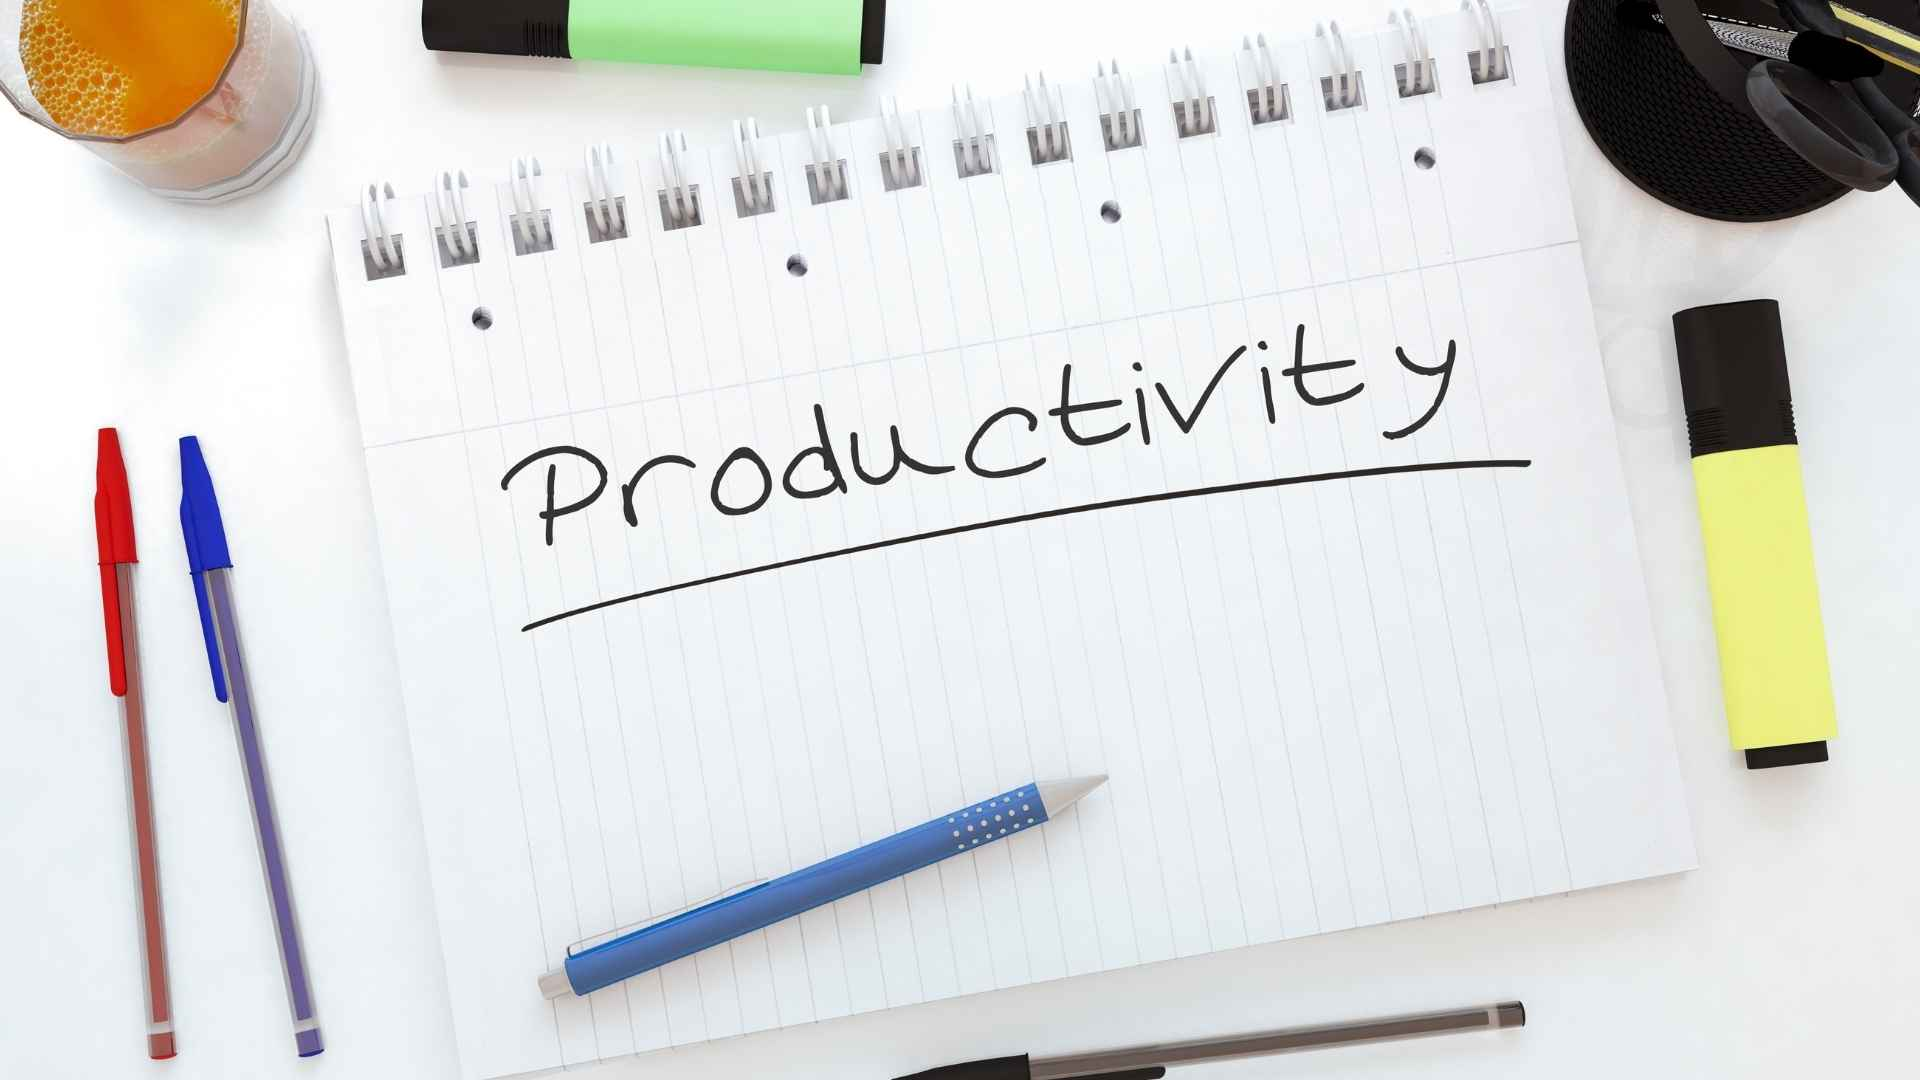 Summer laziness vs. productivity: 10 tips on how to get work done